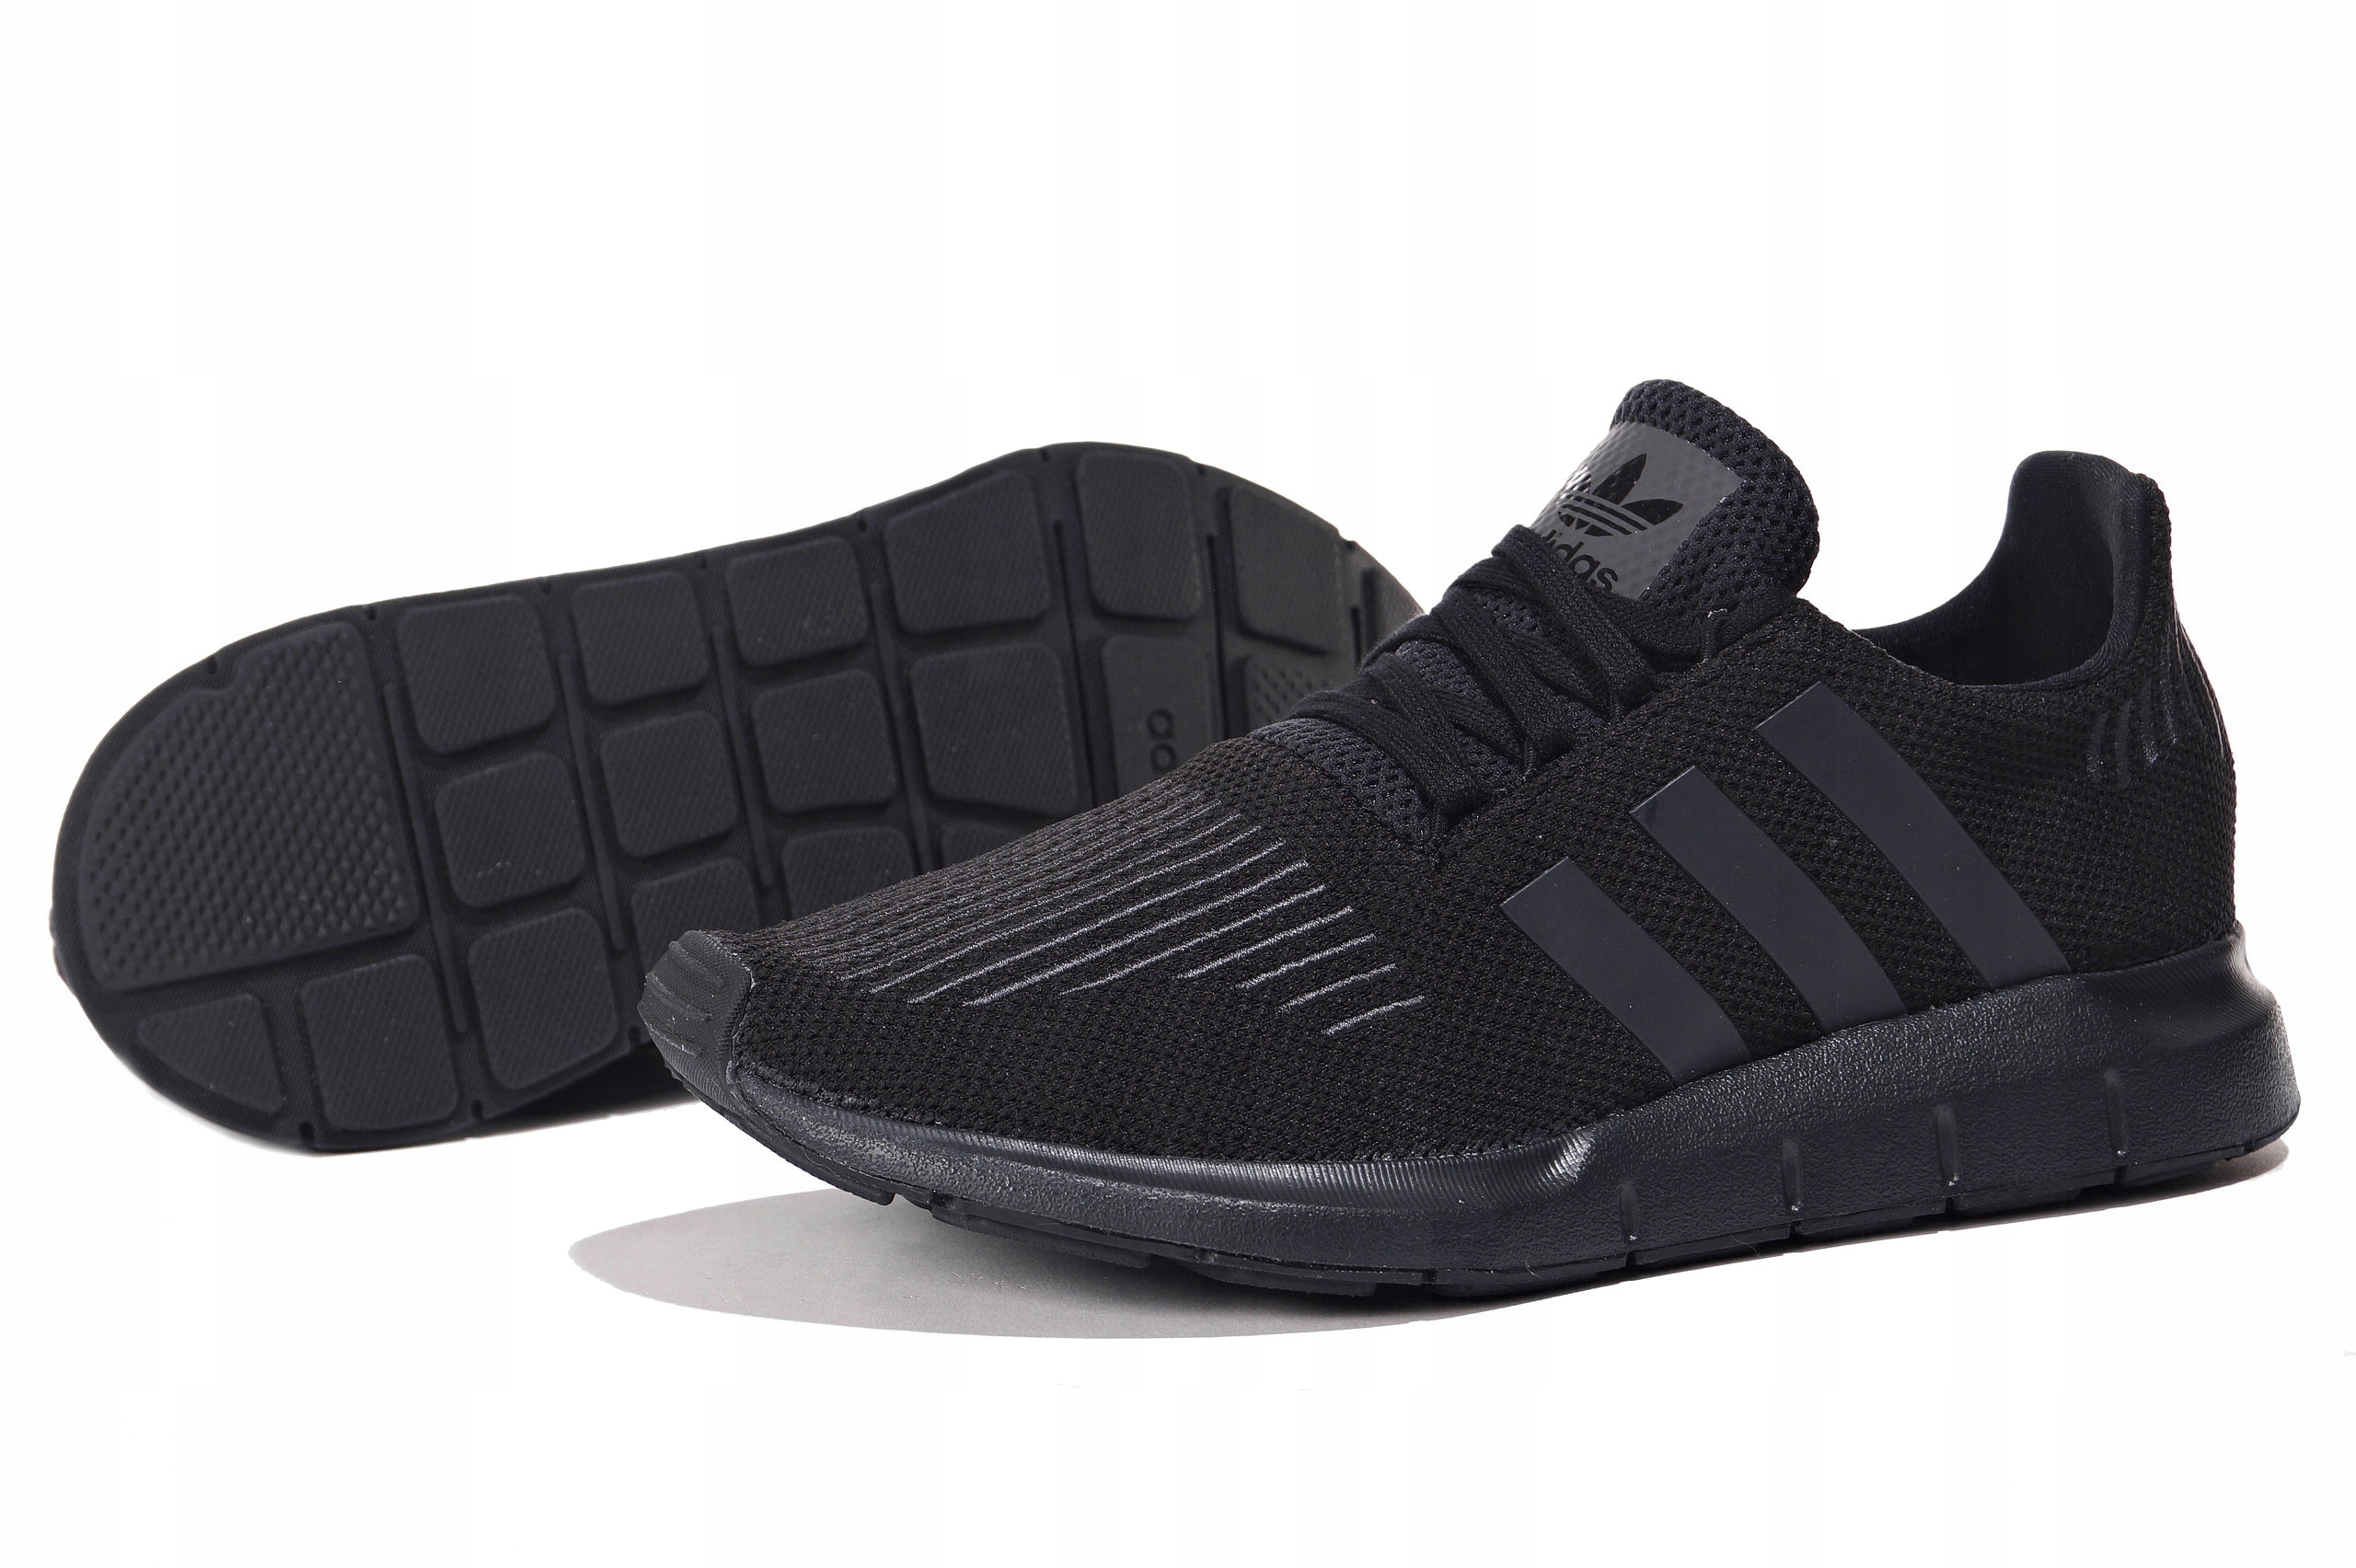 3a4f1ef3d BUTY ADIDAS SWIFT RUN CG4111 ORIGINALS R. 44 2 3 ...